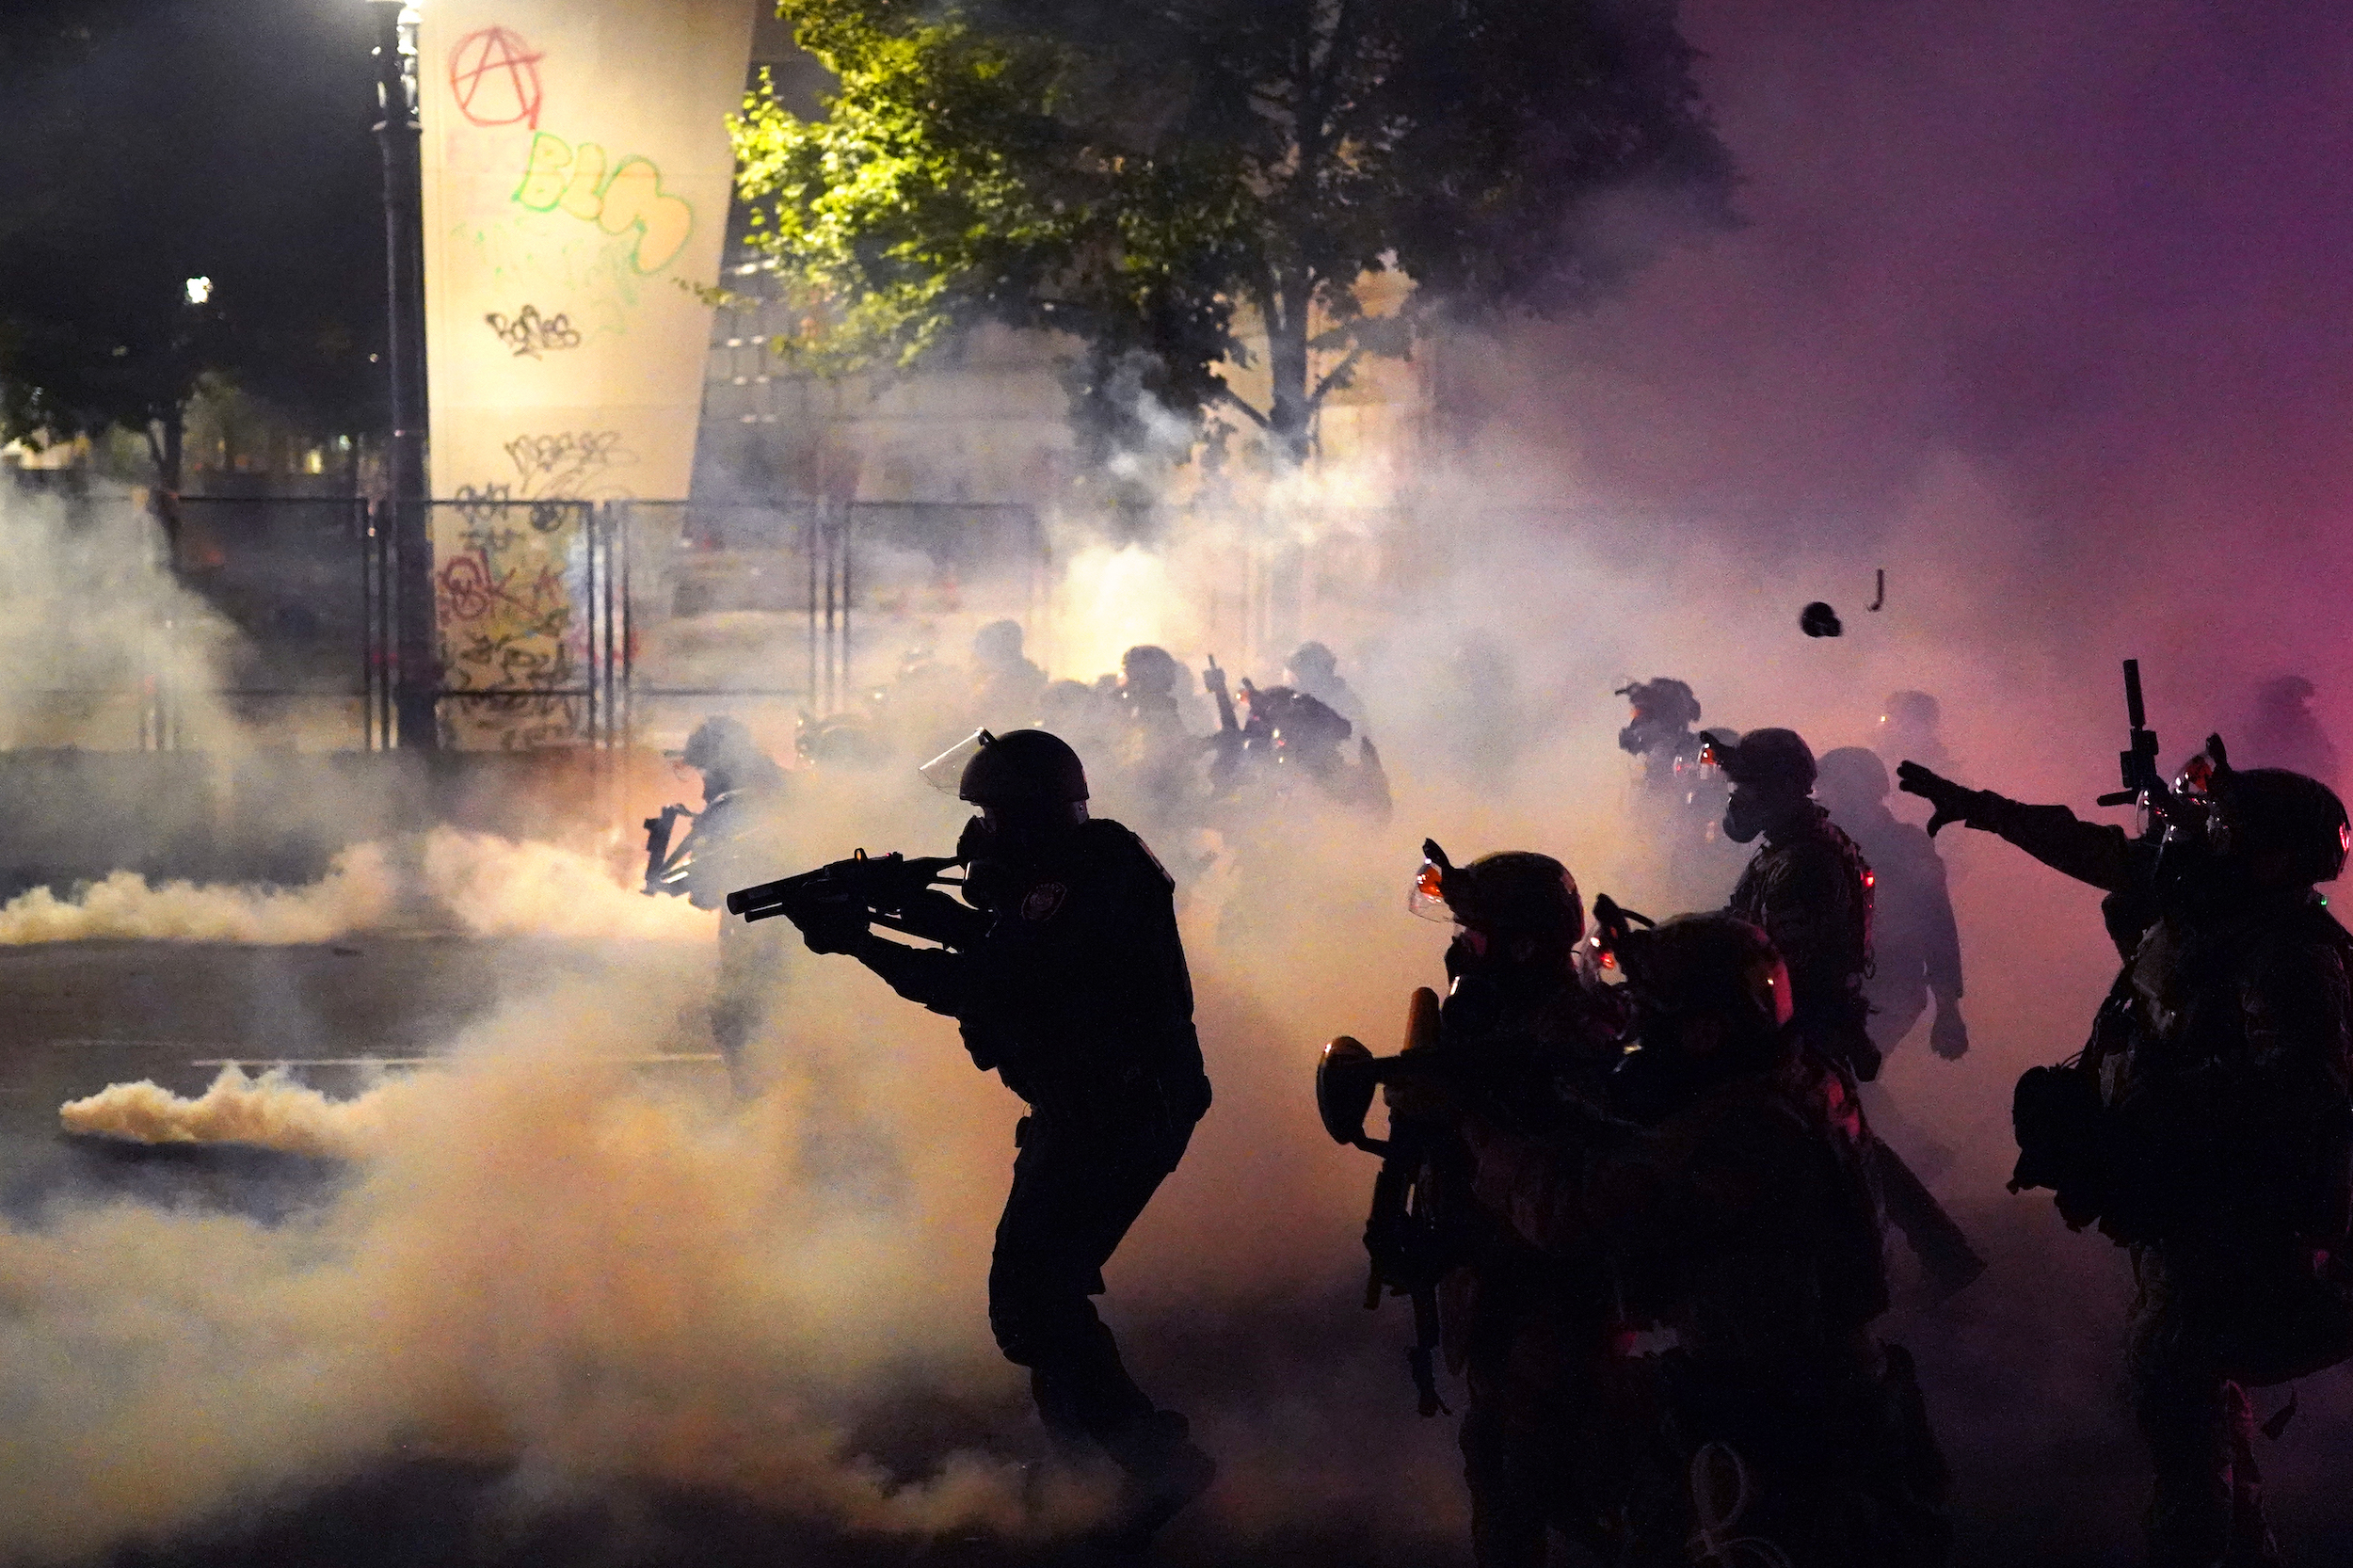 Federal officers deploy tear gas and less-lethal munitions while dispersing a crowd of about a thousand protesters in front of the Mark O. Hatfield U.S. Courthouse on July 24, 2020 in Portland, Oregon.